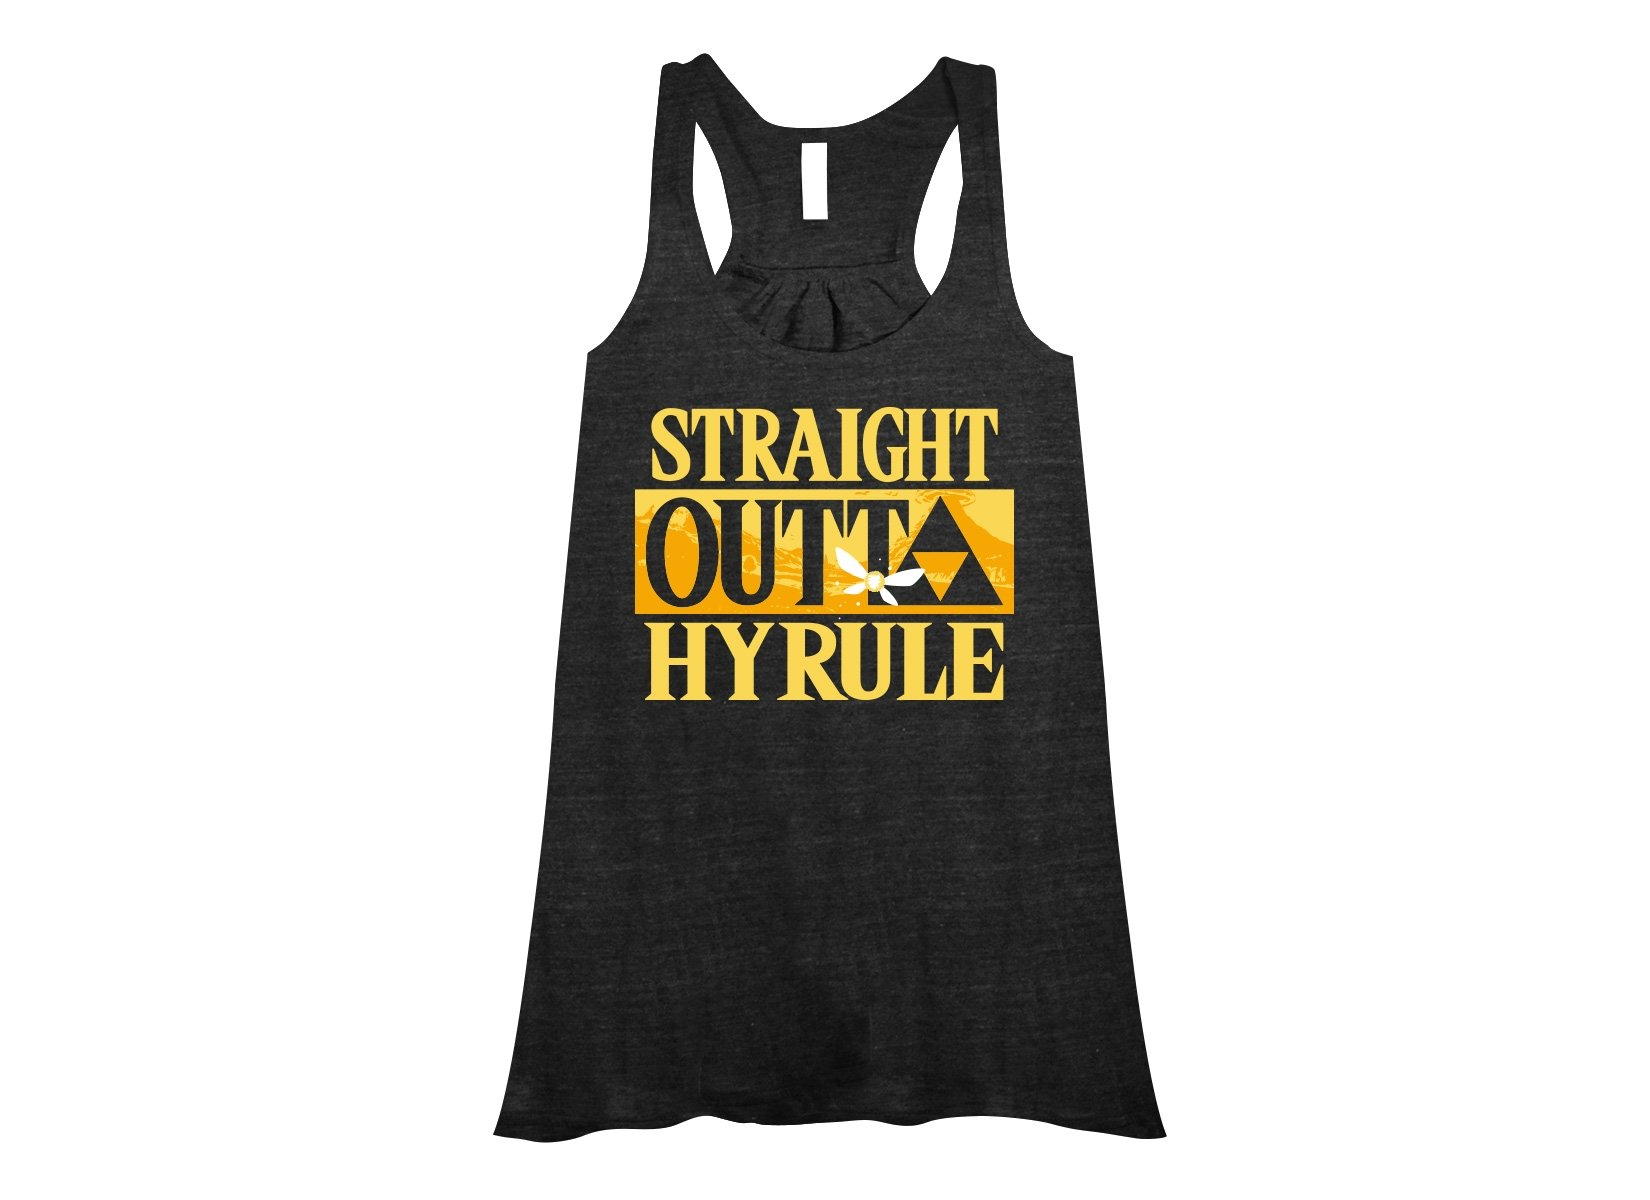 Straight Outta Hyrule on Womens Tanks T-Shirt